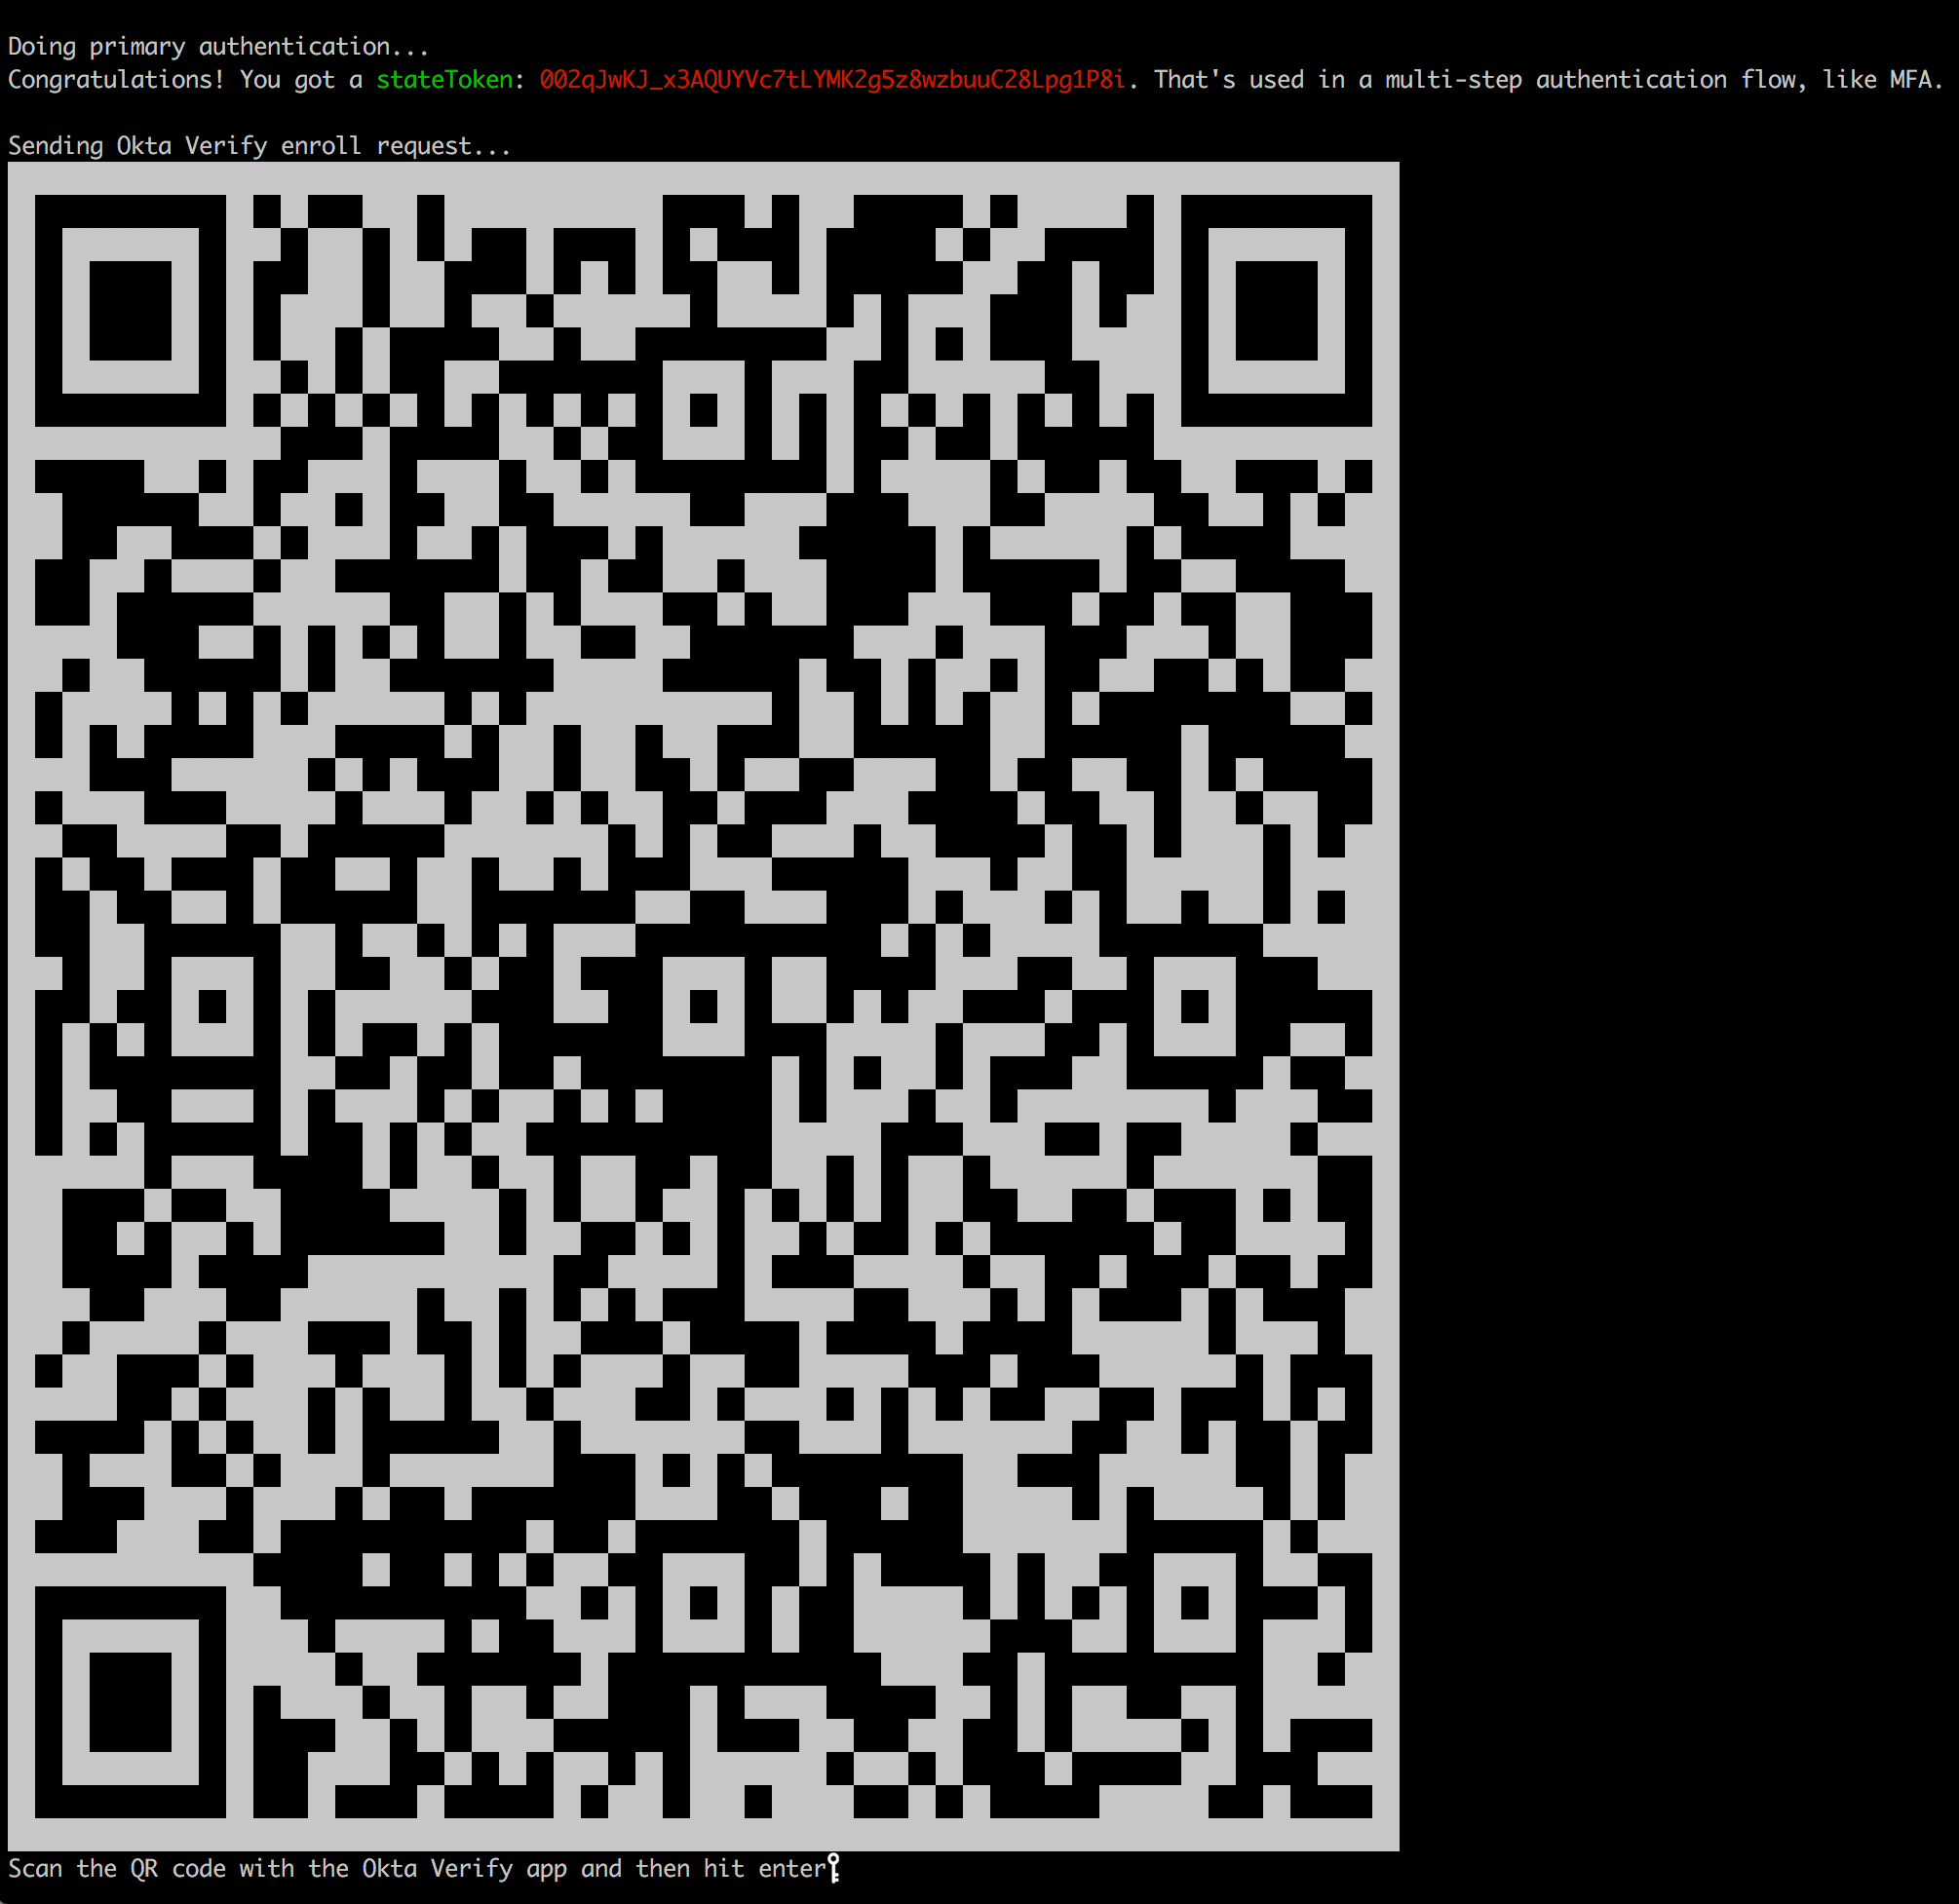 Sample QR code shown in the terminal window